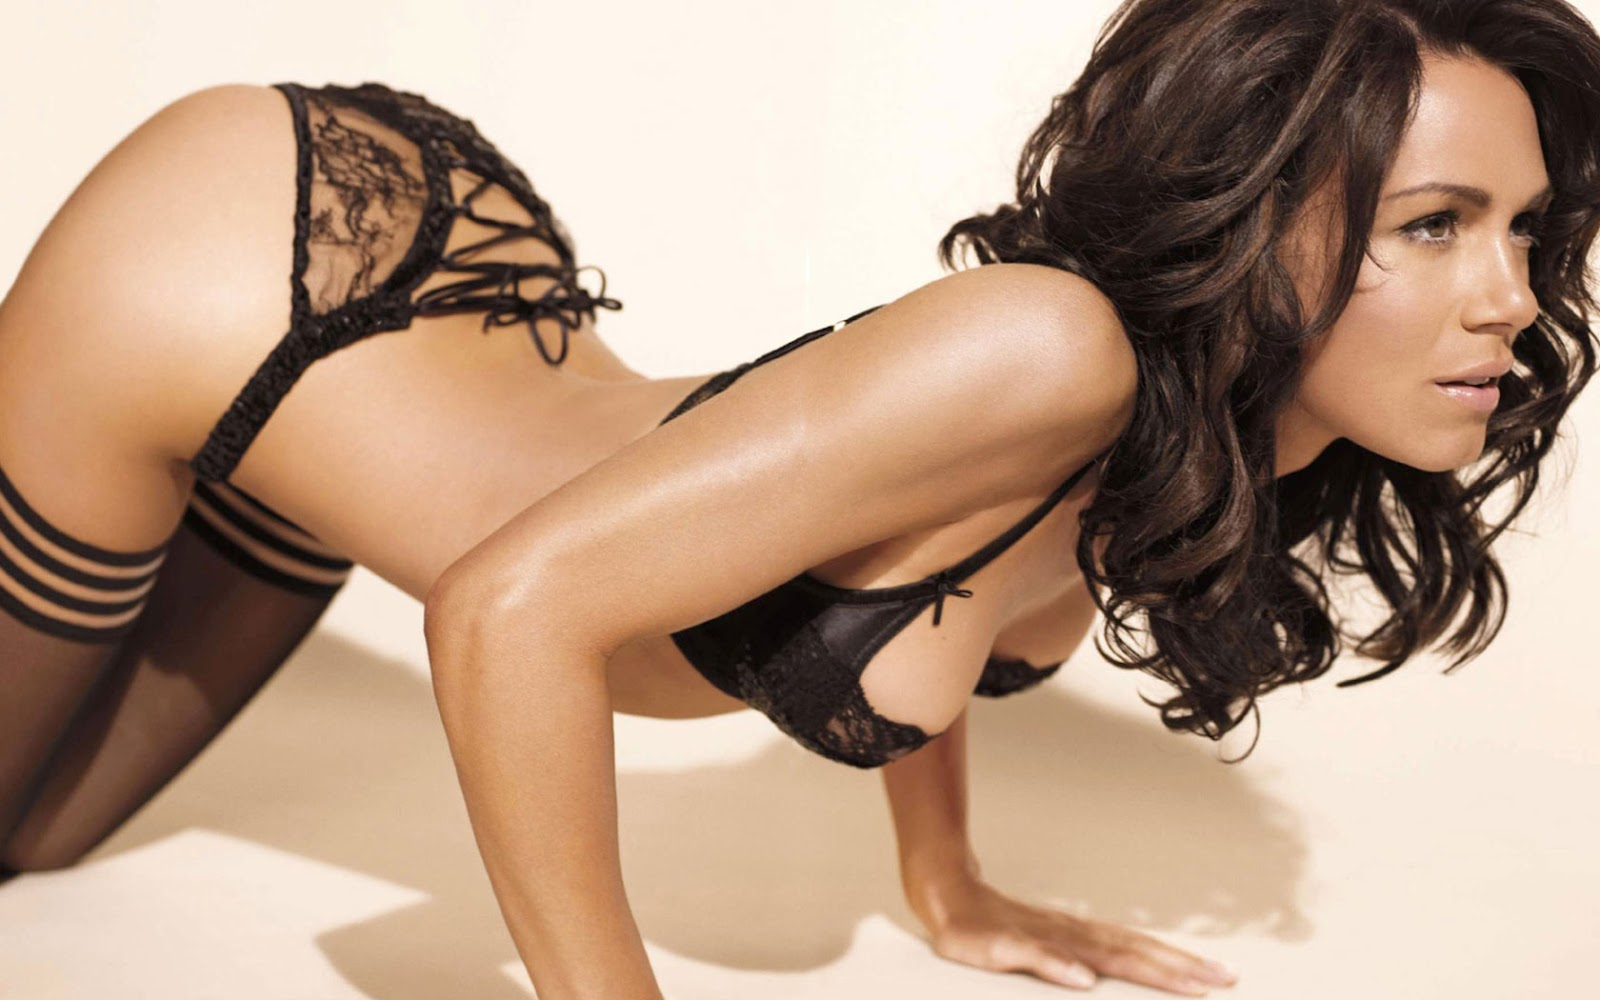 HD Wallpapers of Hot Girls | HD Wallpapers